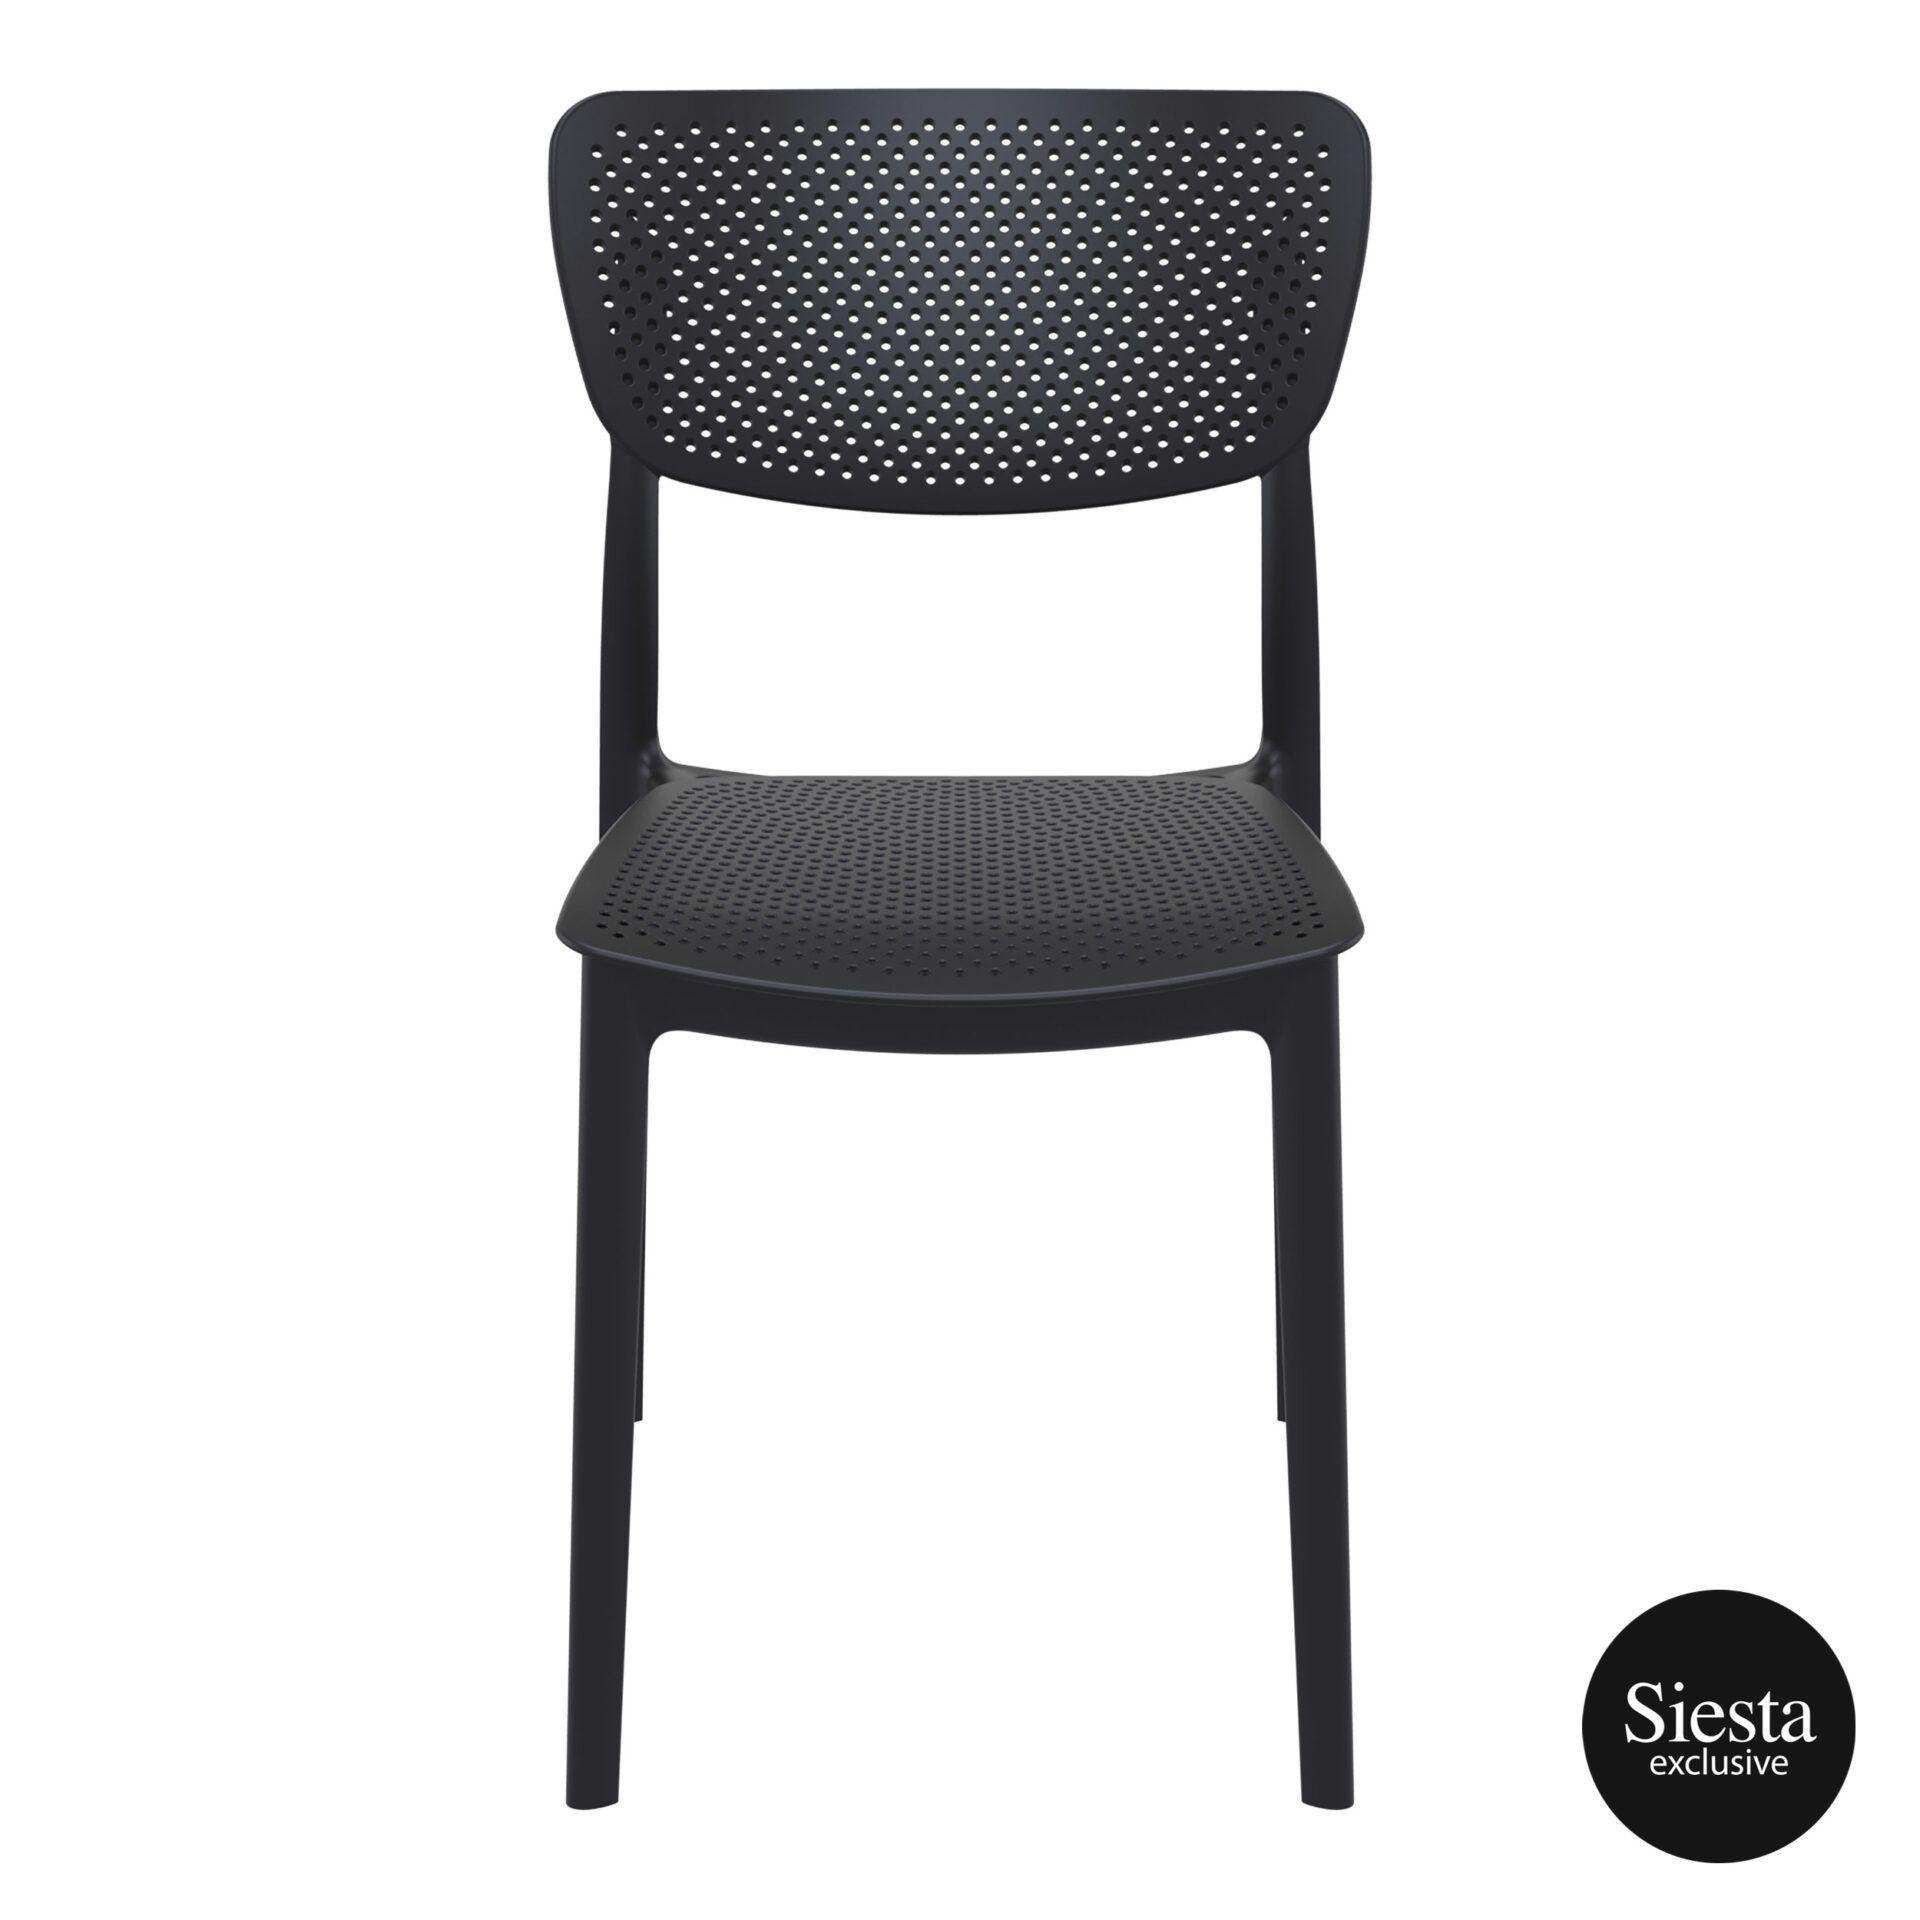 polypropylene hospitality seating lucy chair black front 1